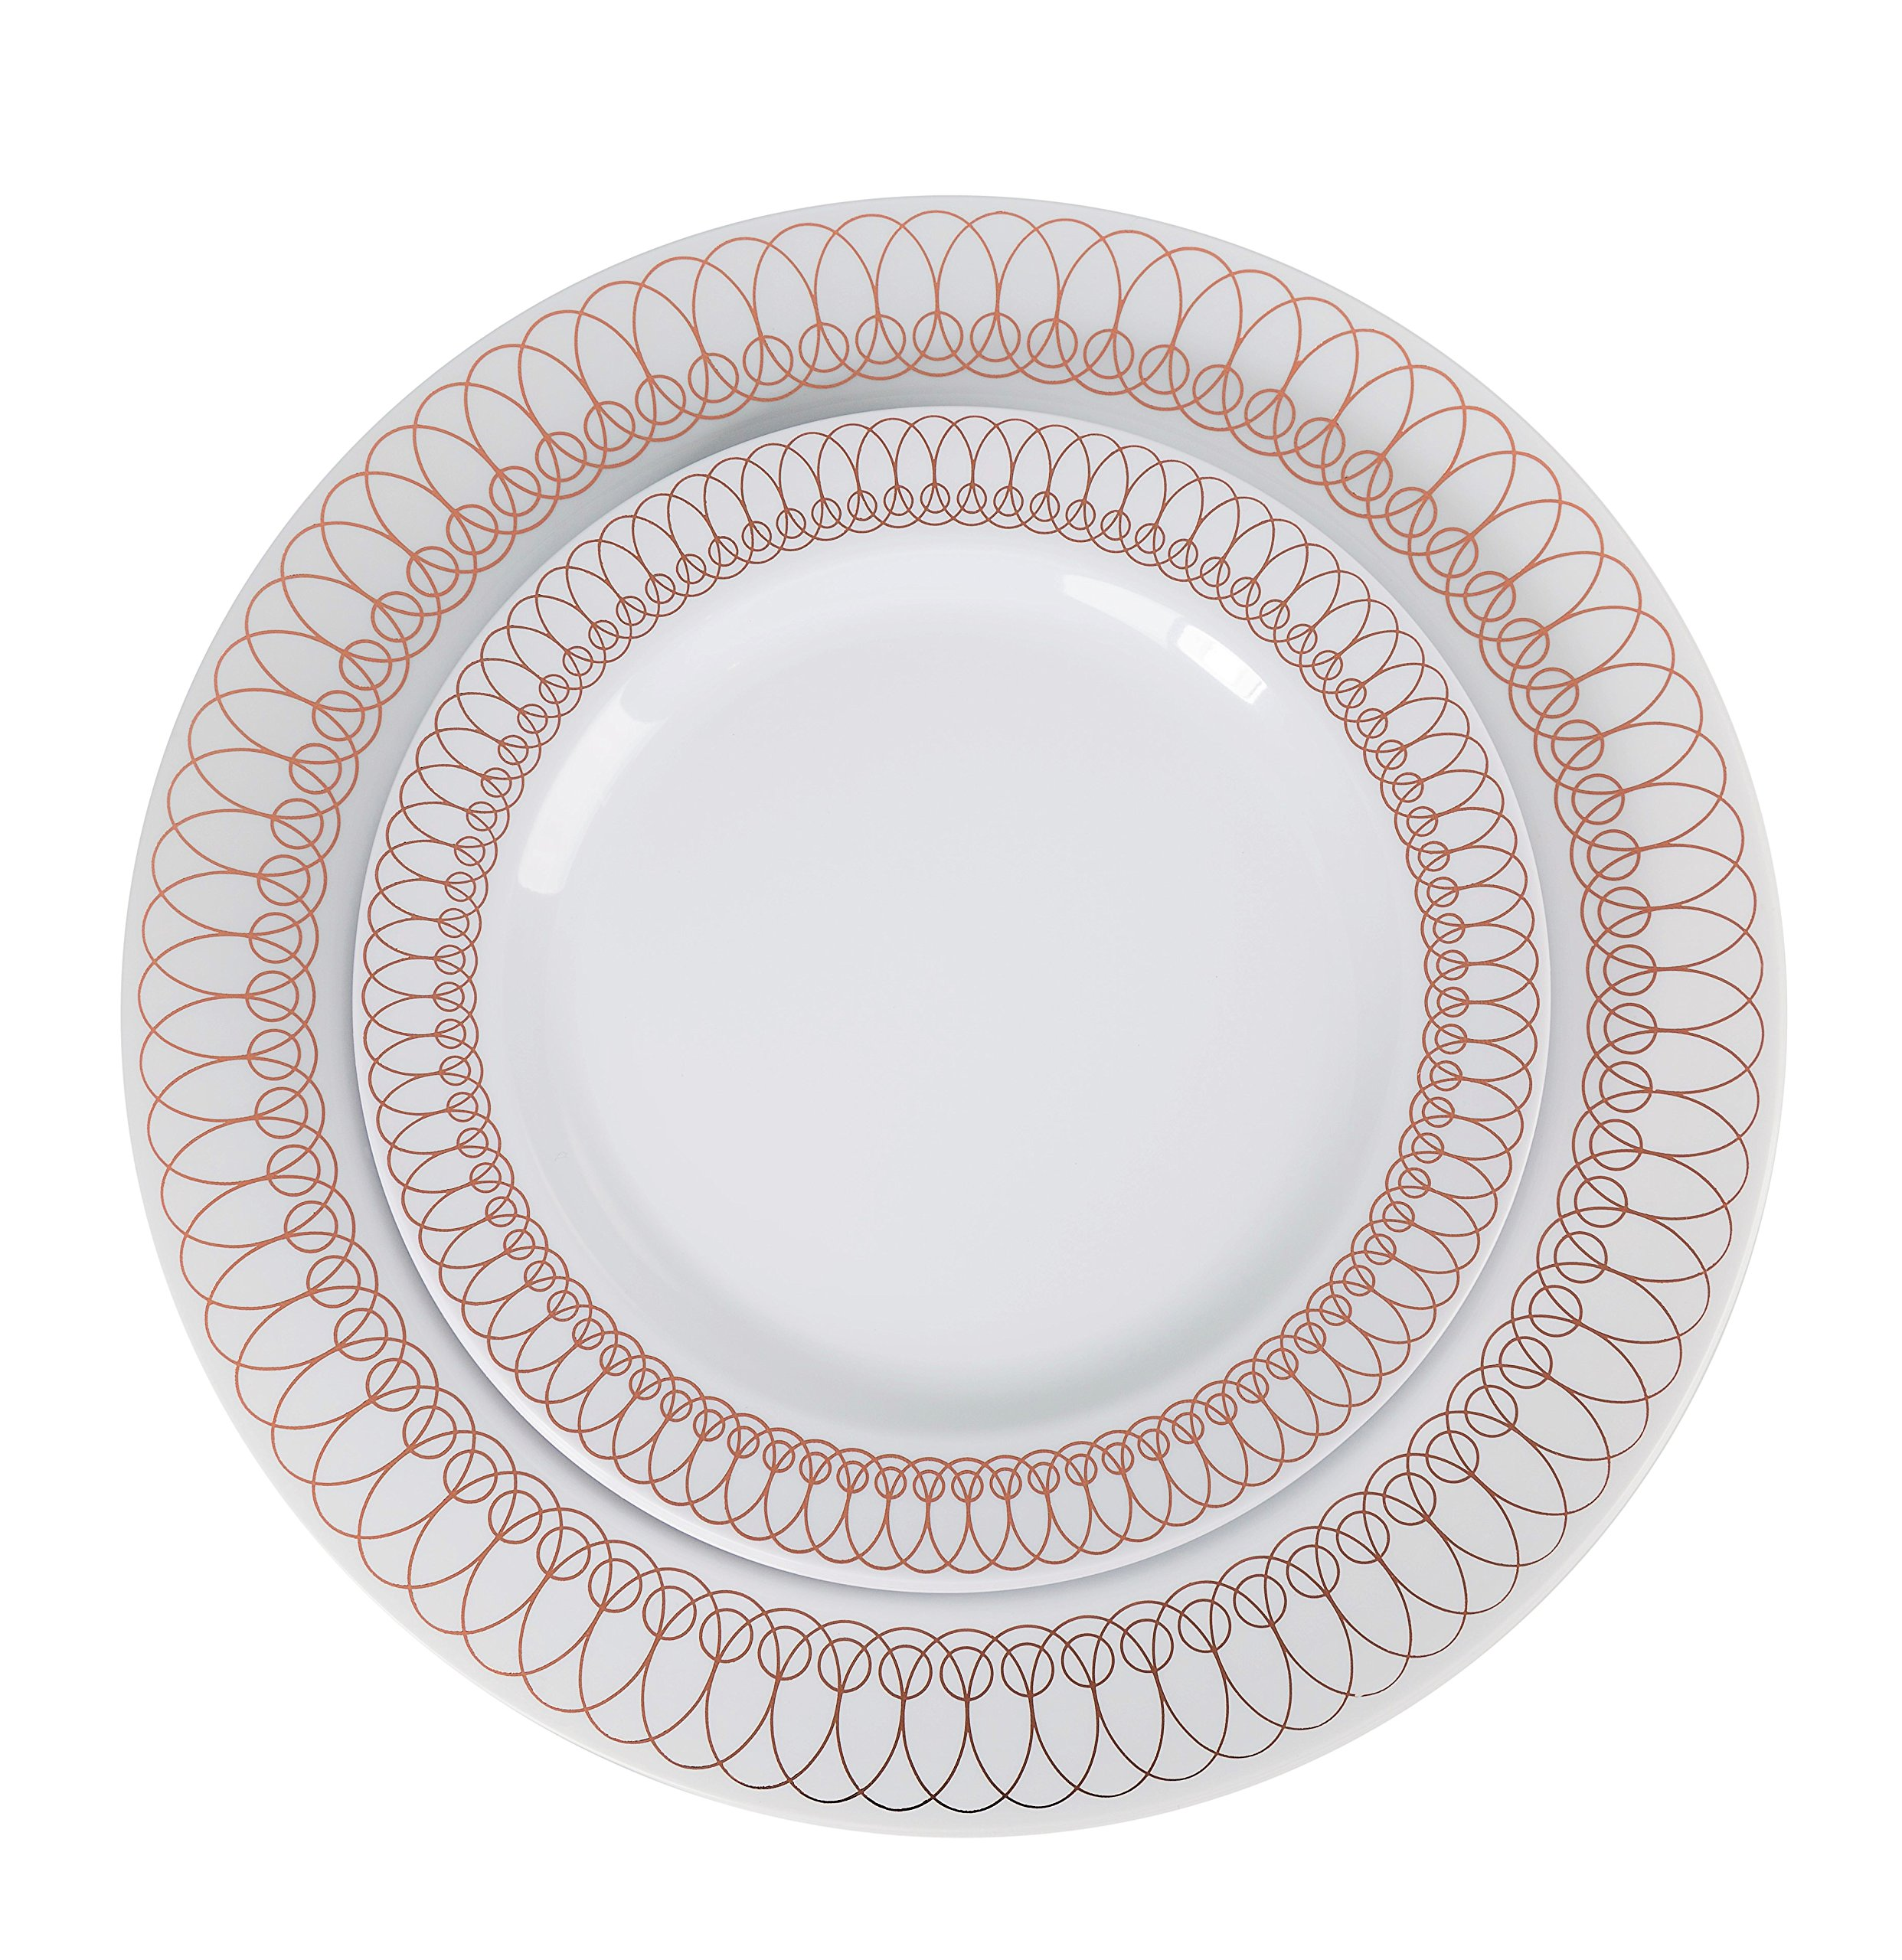 "60-Pack of Luxury Disposable Plastic Plates for Upscale Parties- 30x10.25"" inch Dinner Plates/ 30x 7.5"" Dessert/Salad Plates – Lace Trim Designs in Gold, Silver and Rose Gold– Exquisite (Rose Gold)"